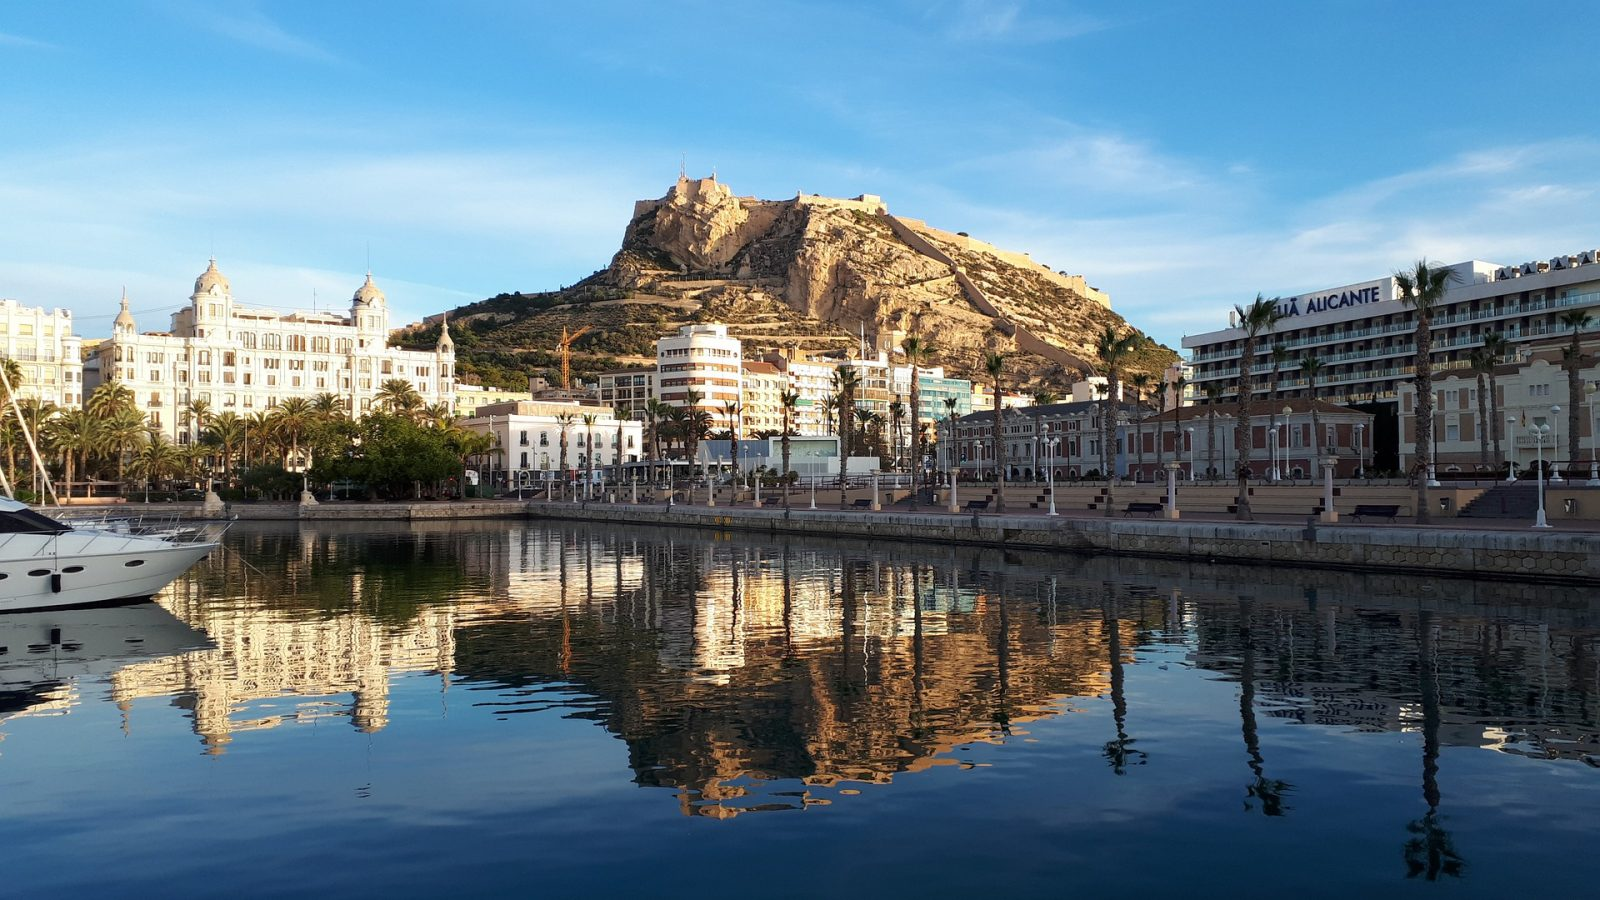 Have you ever thought about moving to Alicante?